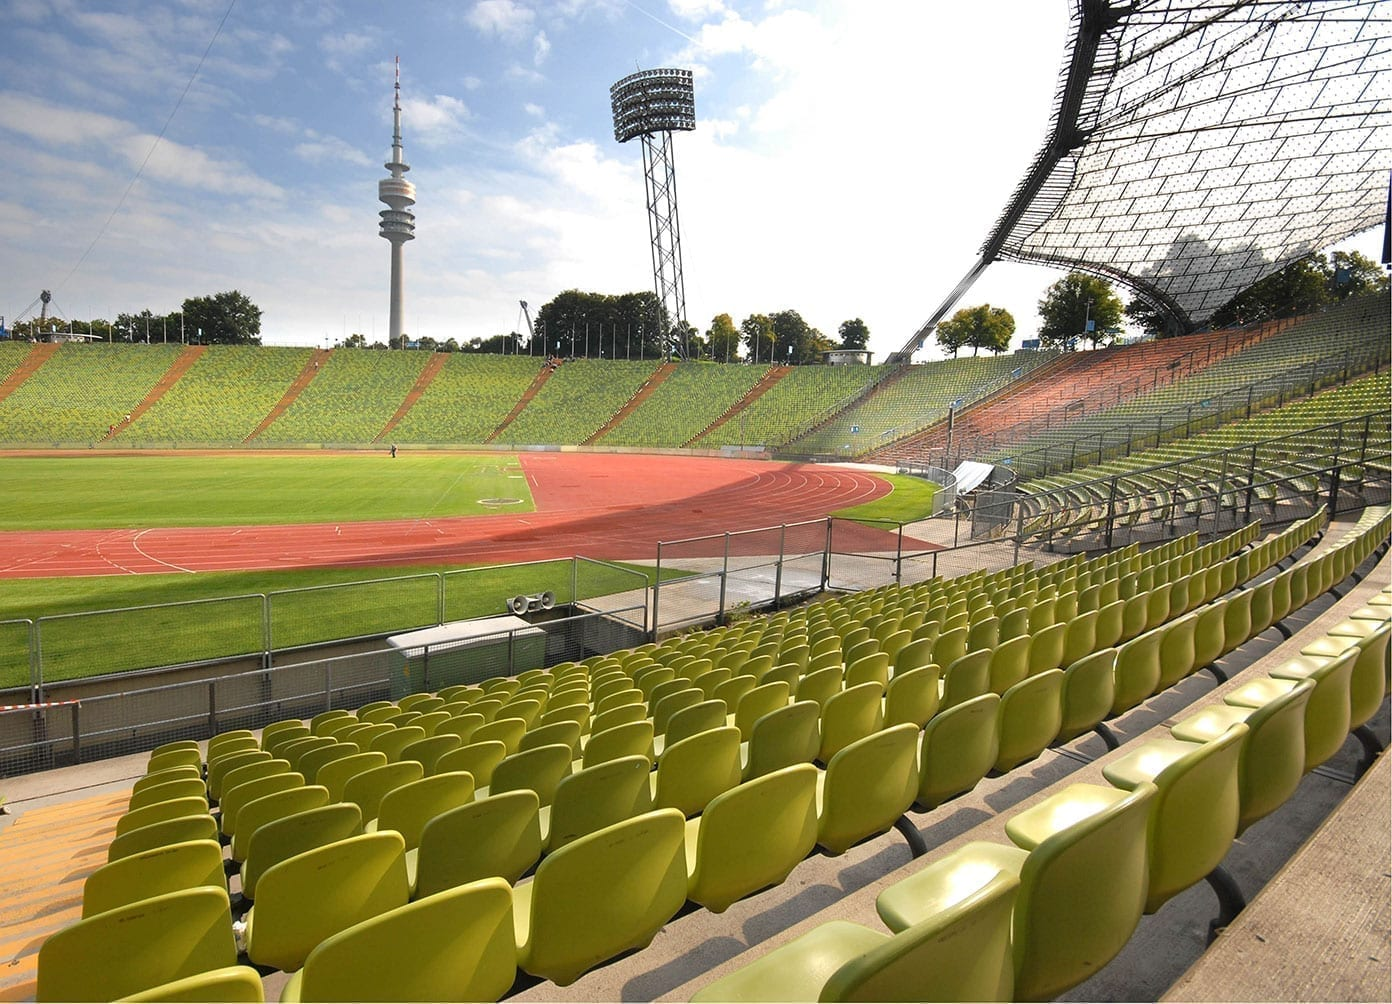 Olympia_Stadion_Muenchen_1_small-1